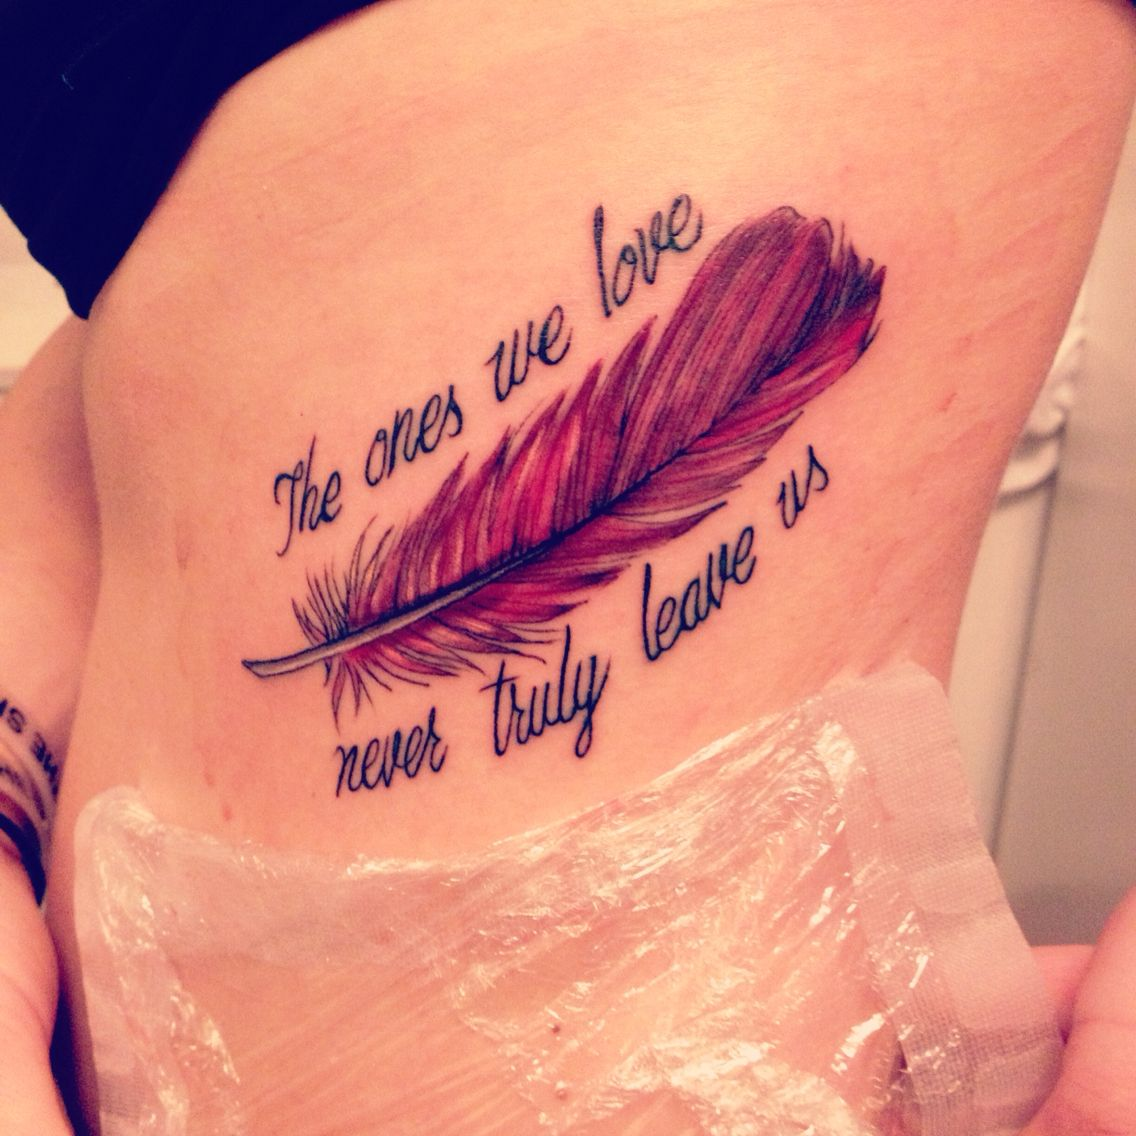 Tattoo In Memory Of A Family Member Feather Tattoos Tattoos For Daughters Remembrance Tattoos